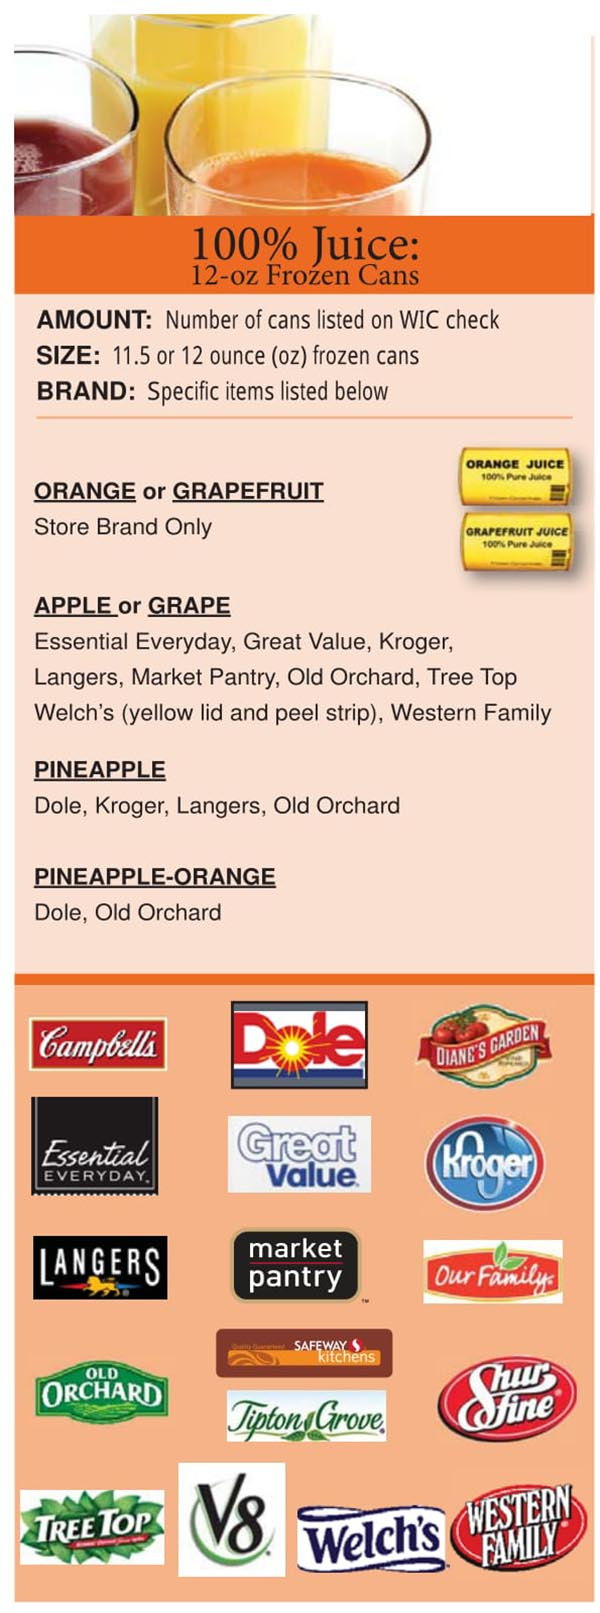 Colorado WIC Food List Juices, Orange Juice, Grapefruit and Pineapple